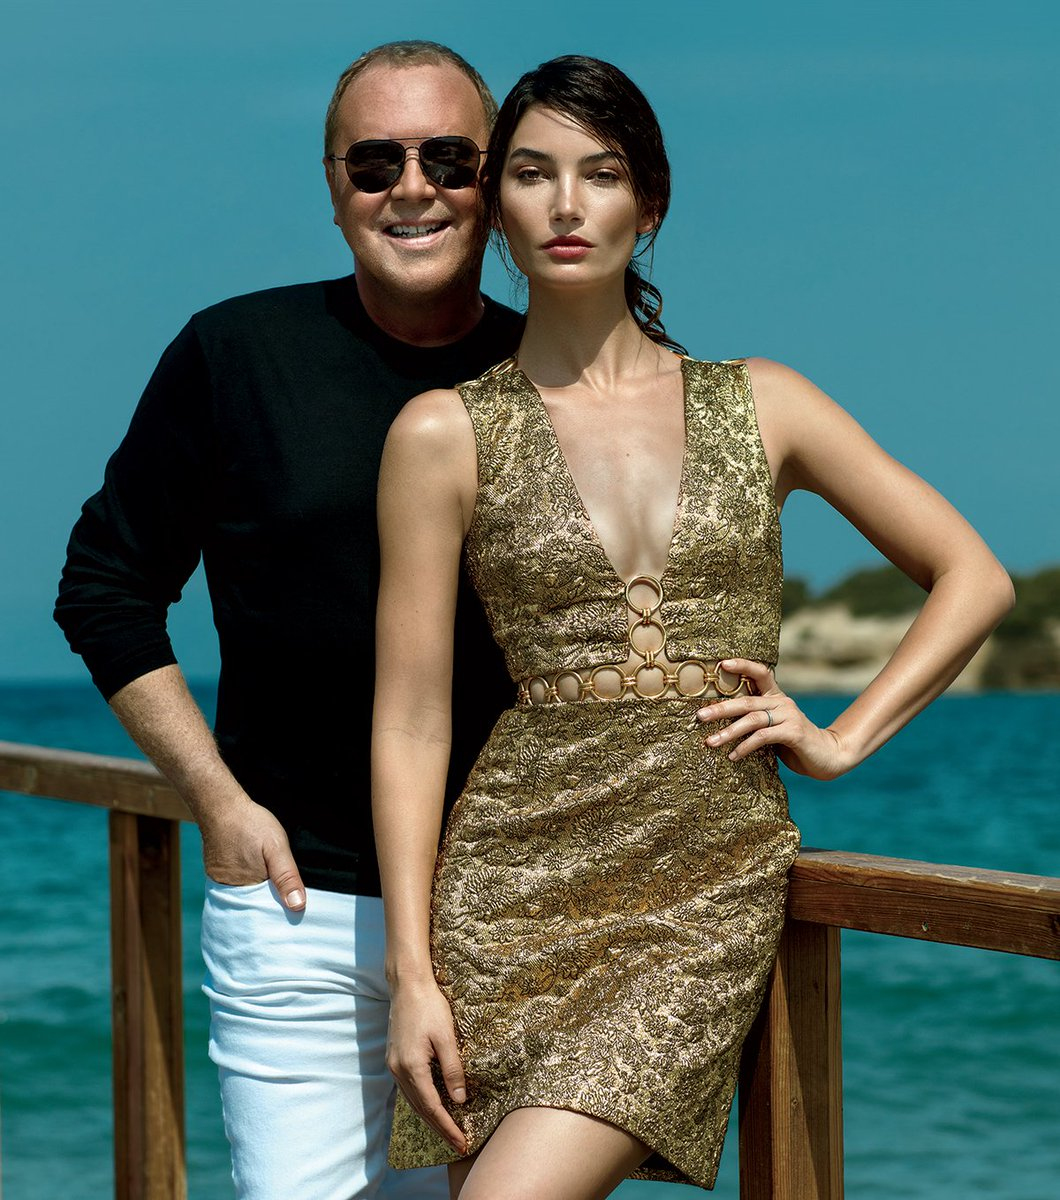 After 35 yrs, @MichaelKors toasts brand w/a new fragrance & campaign starring @LilyAldridge: https://t.co/ZjxaoSUlGe https://t.co/3JZHnFnDCm